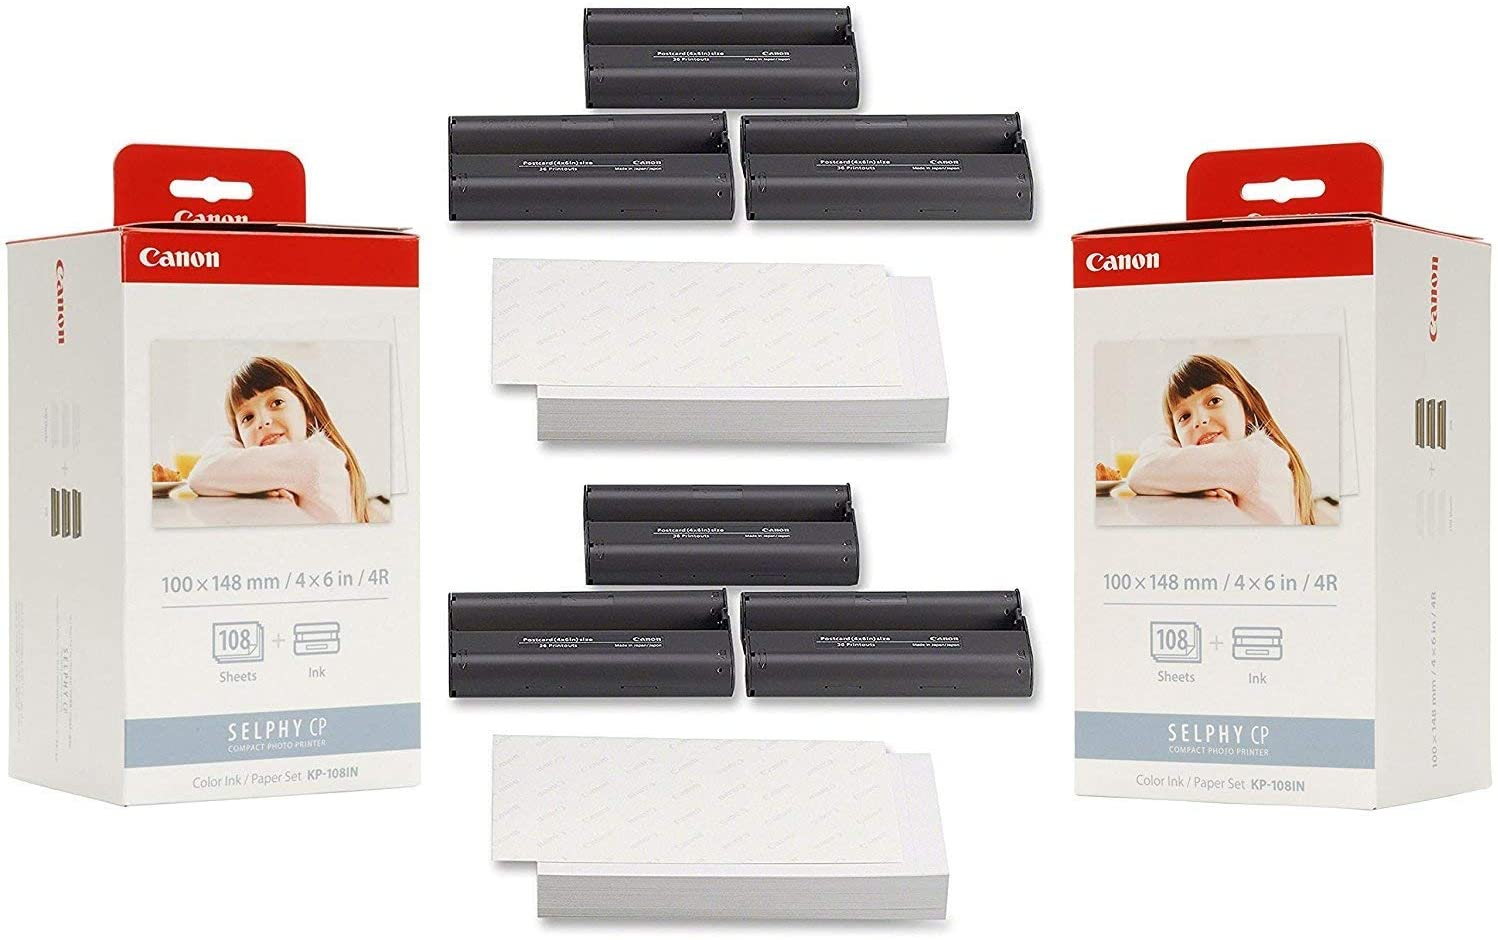 Canon Store KP-108IN Ink Paper Set 2 216 Prints Mesa Mall 3115B001-X2 - Pack